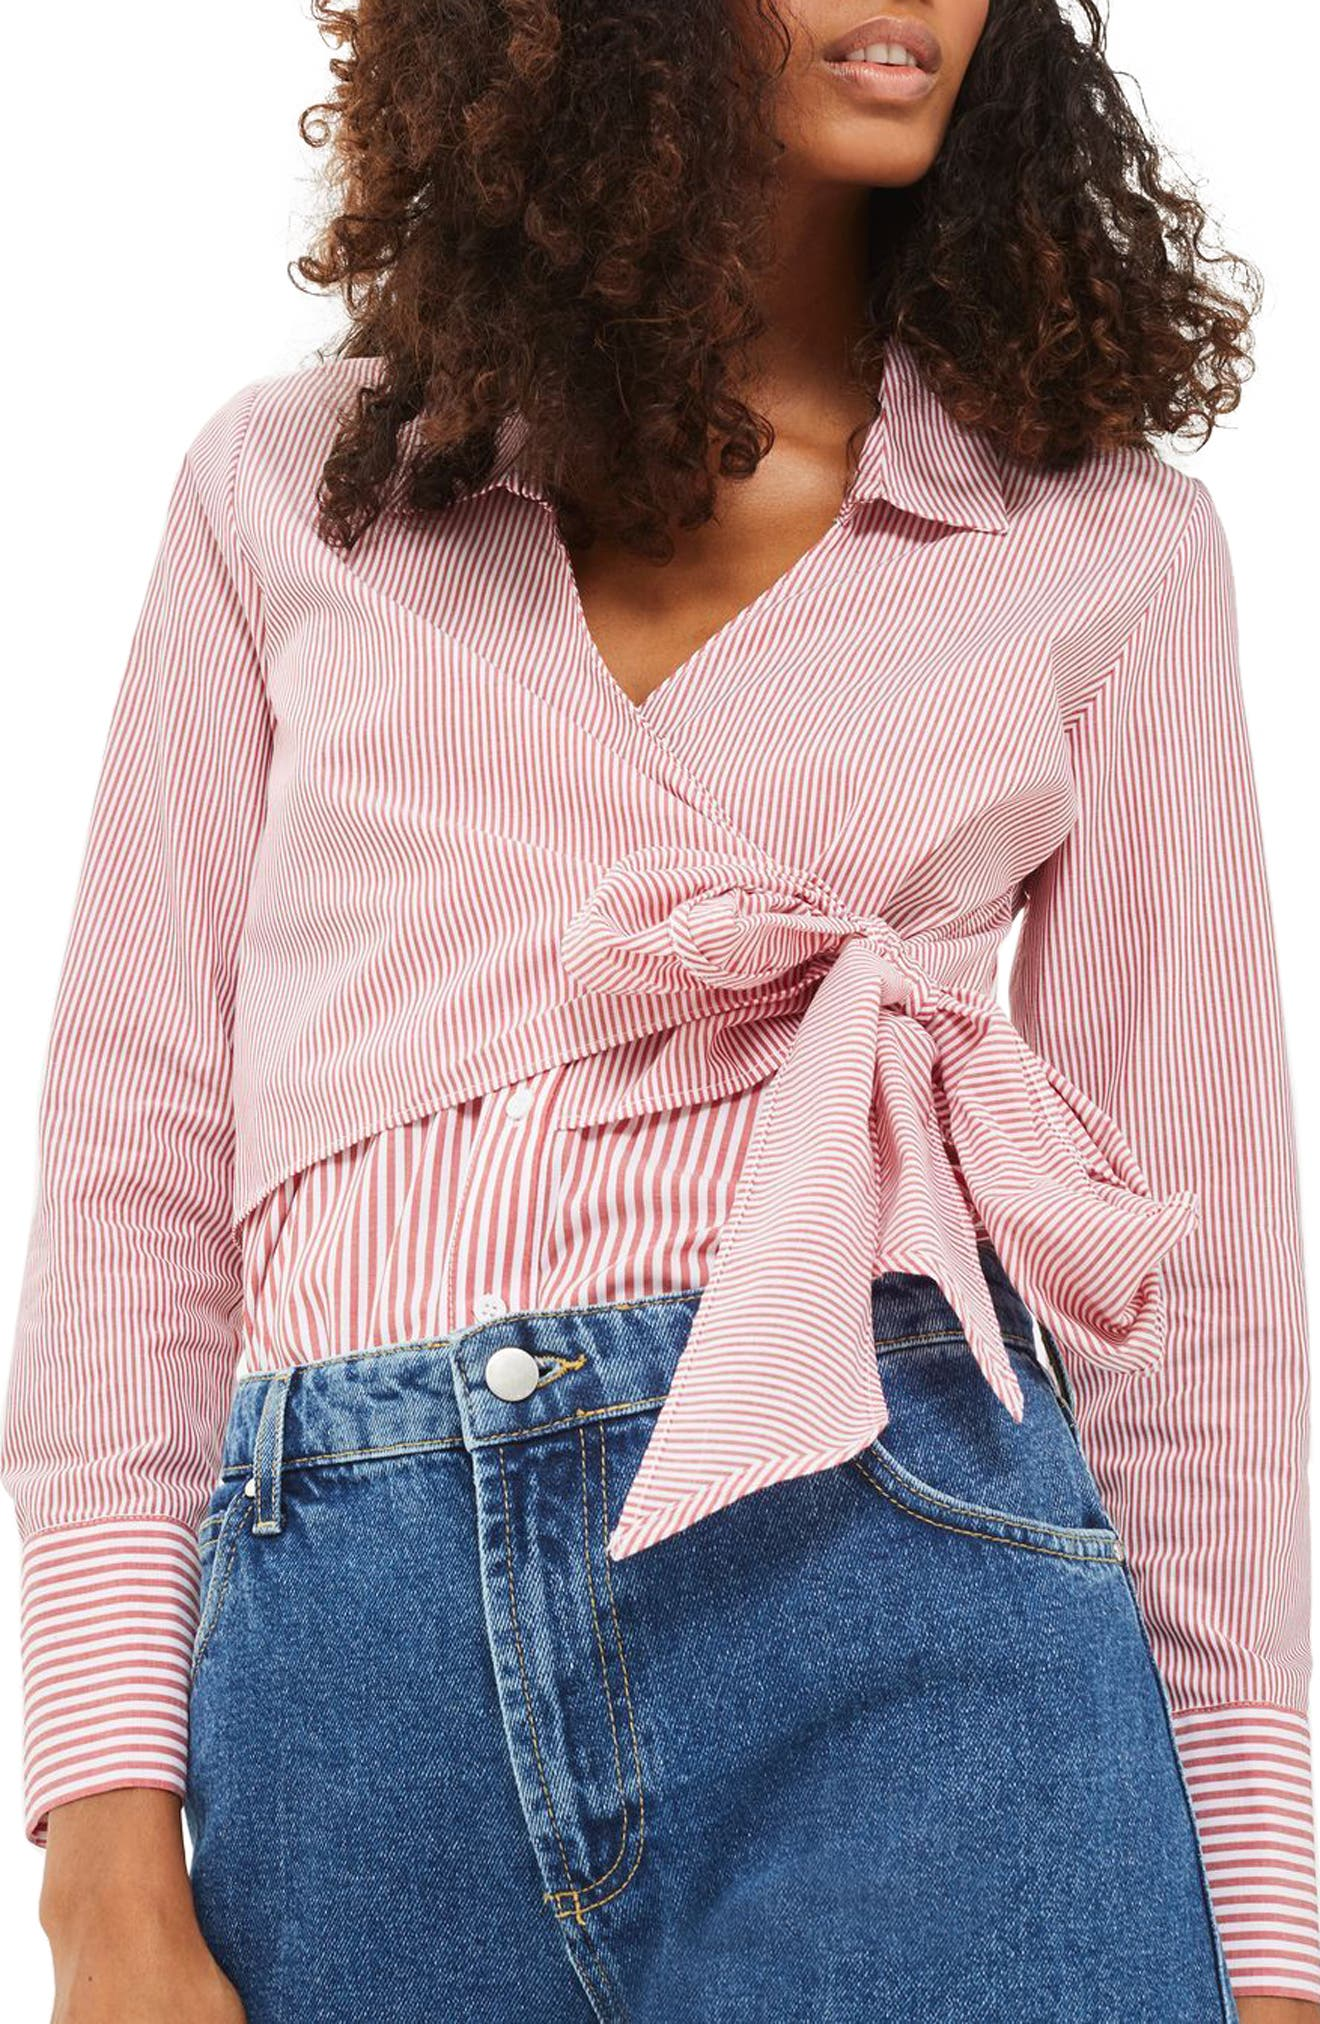 Topshop Tie Wrap Stripe Shirt